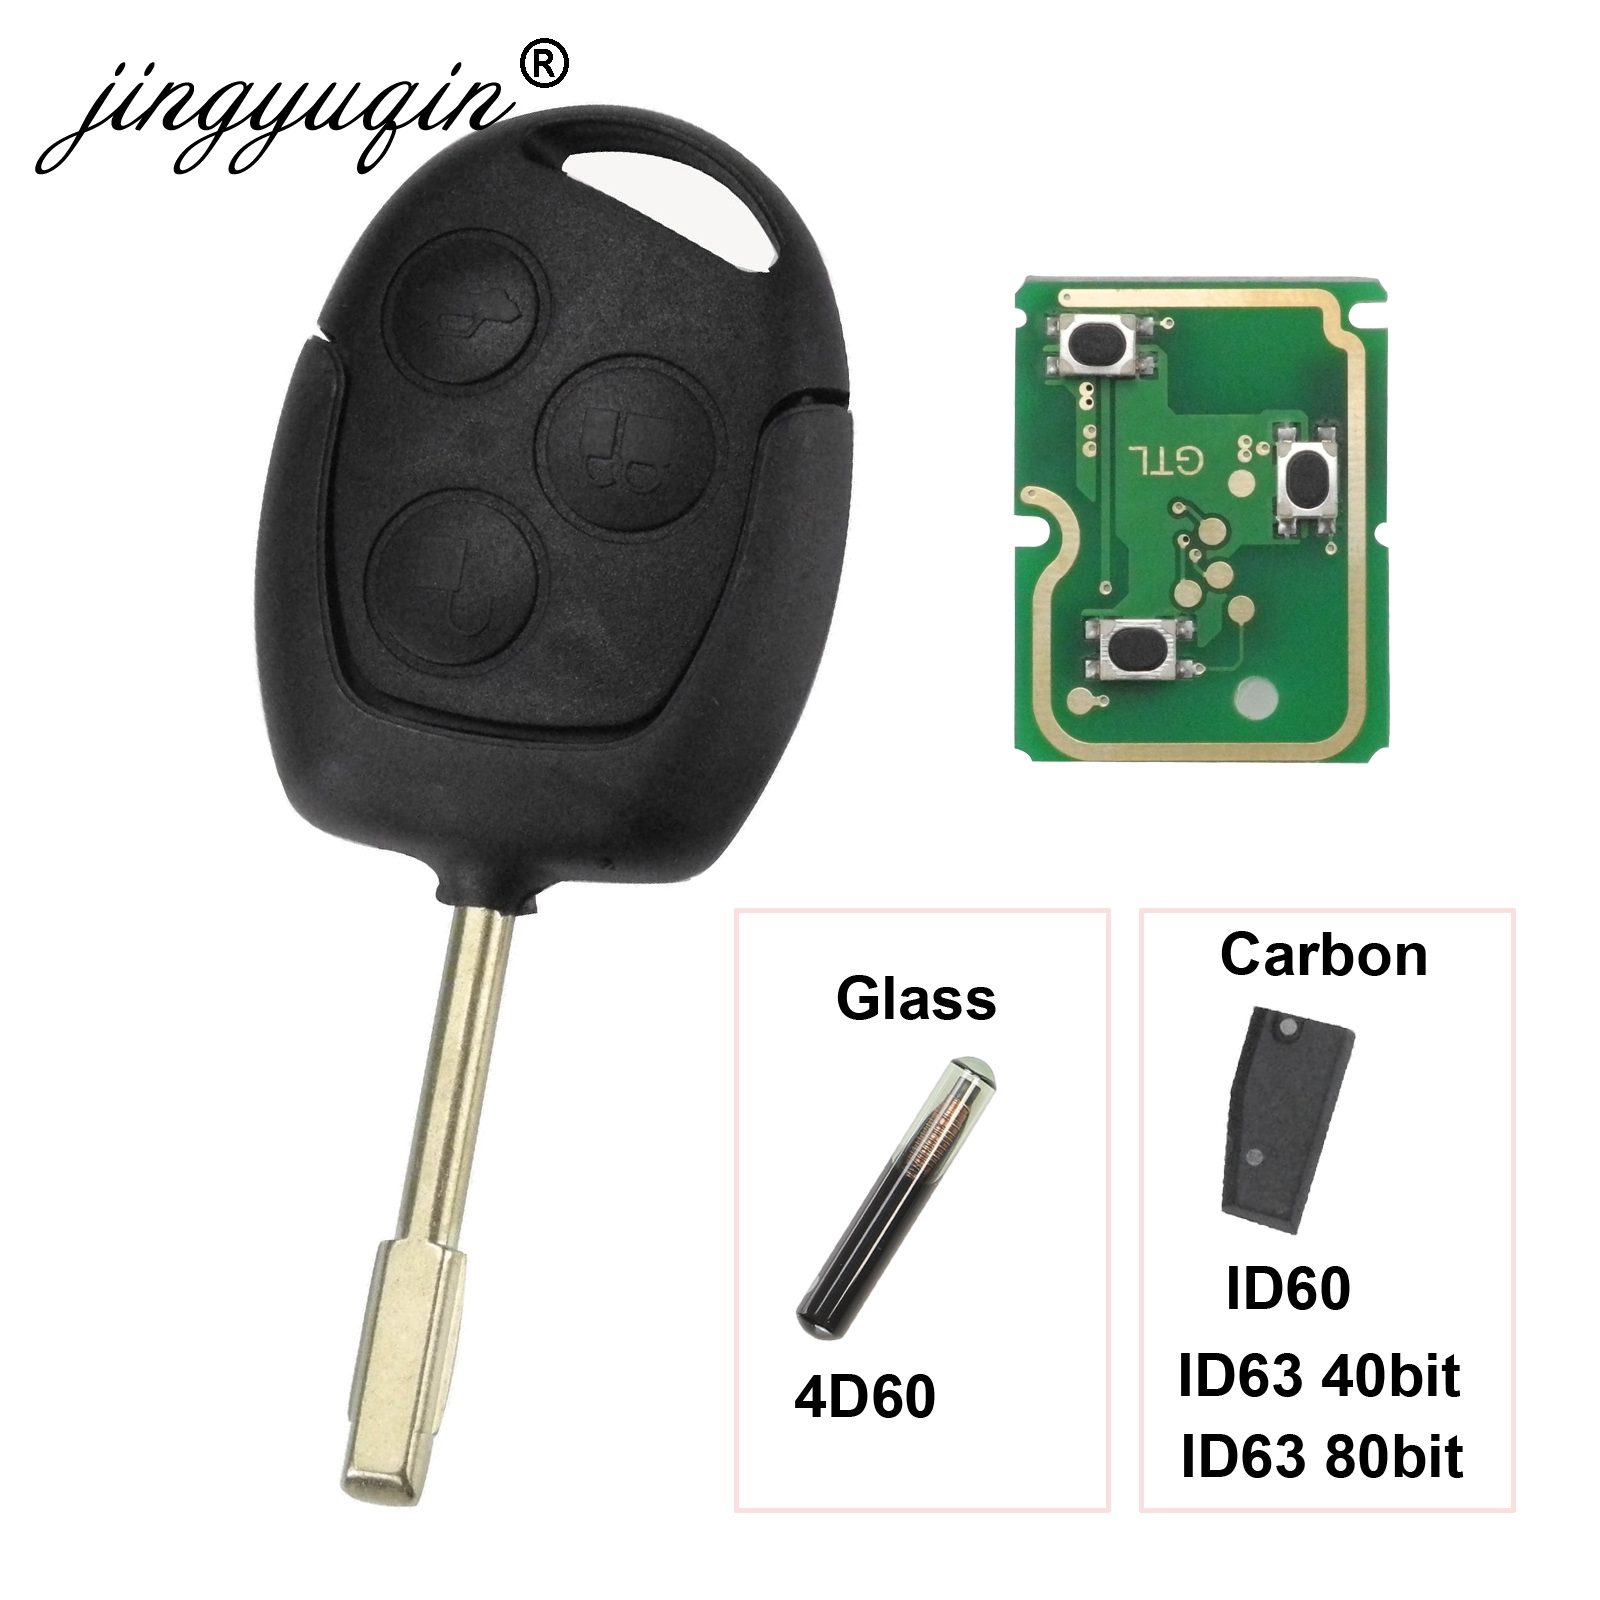 M3N5WY8609 Smart Key 5 Button 315MHz ID46 Chip Fob Transmitter for Ford FCC